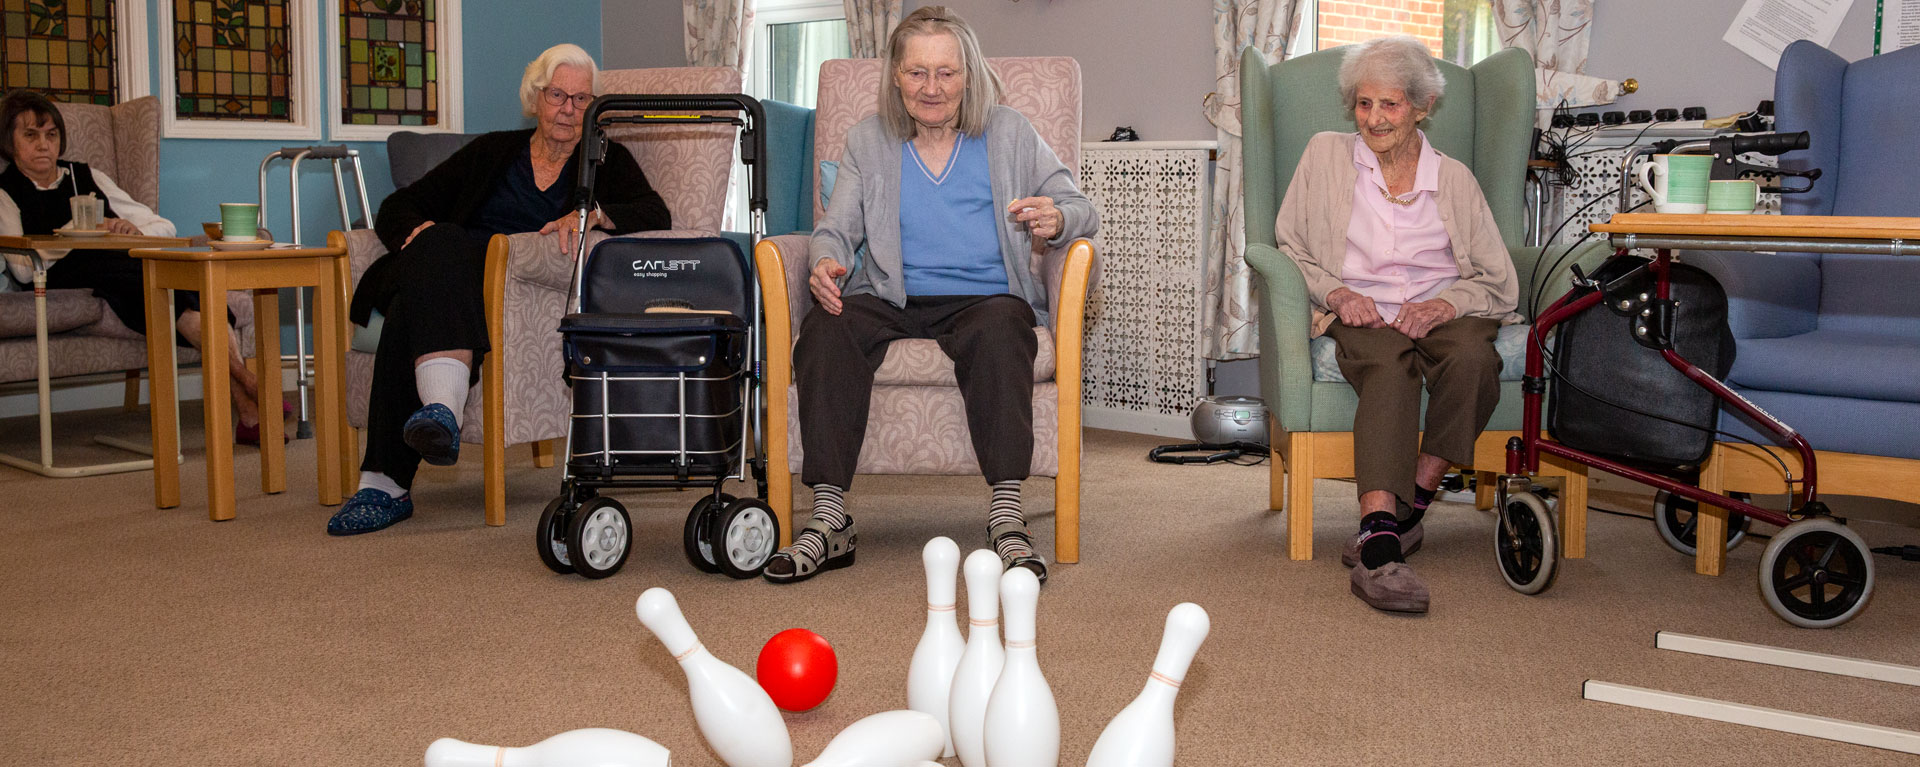 Residents playing skittles